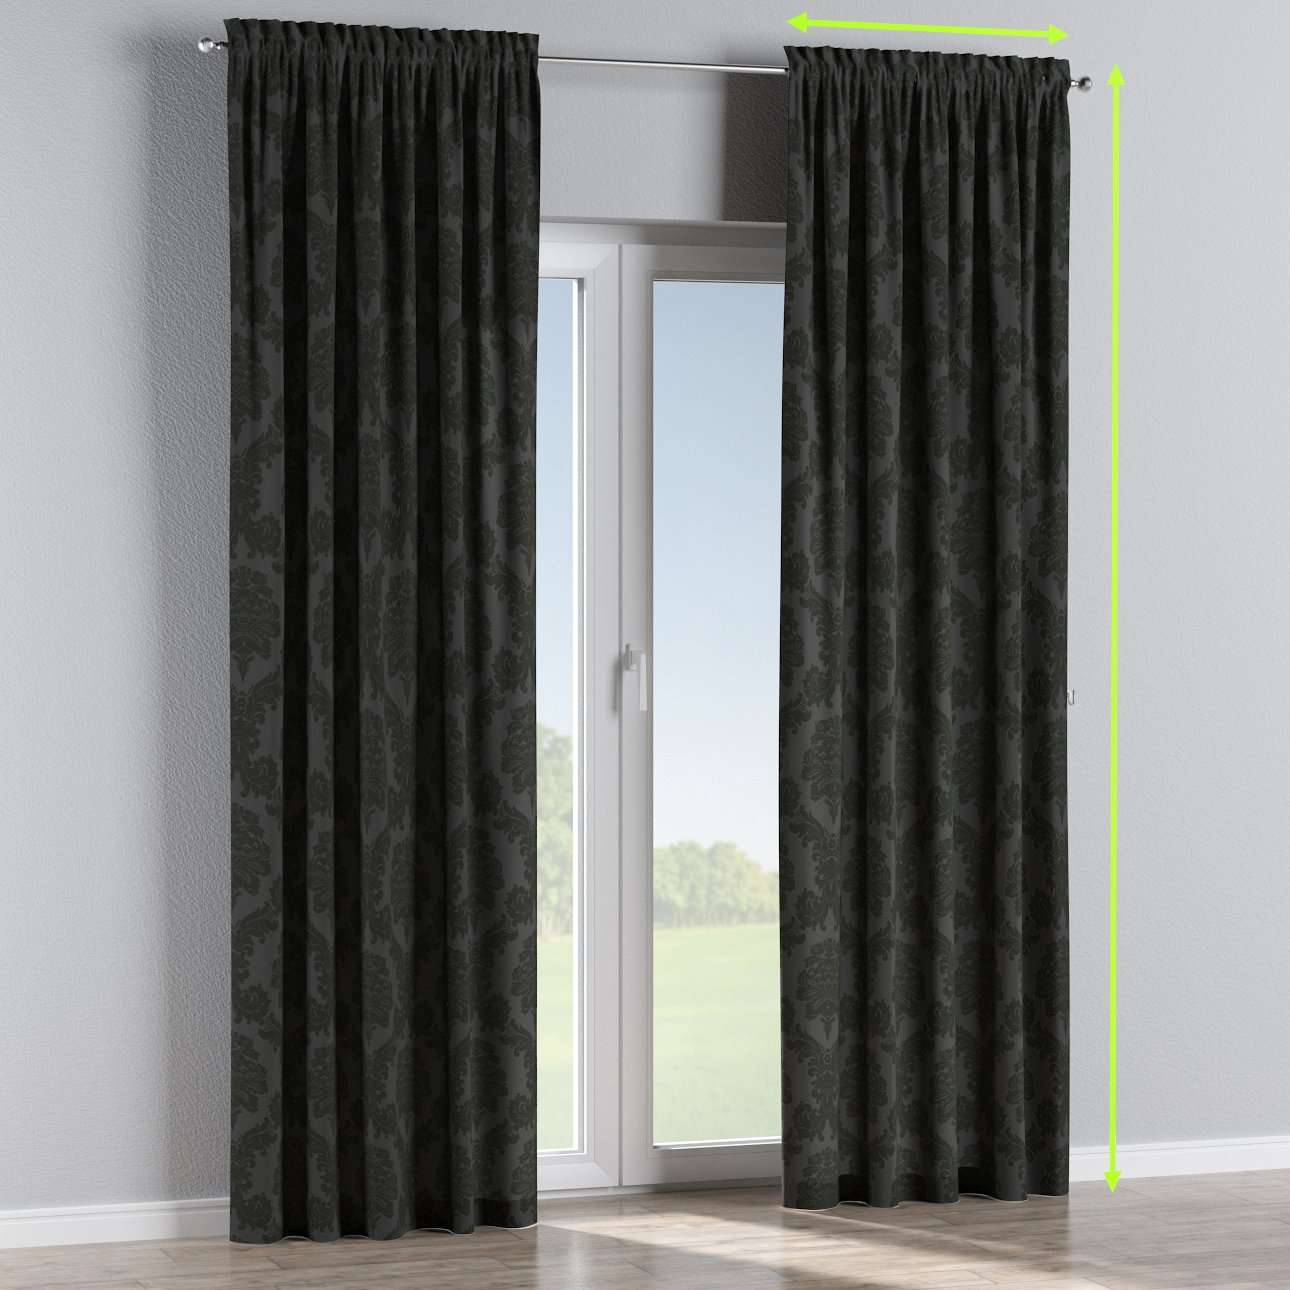 Slot and frill curtains in collection Damasco, fabric: 613-32